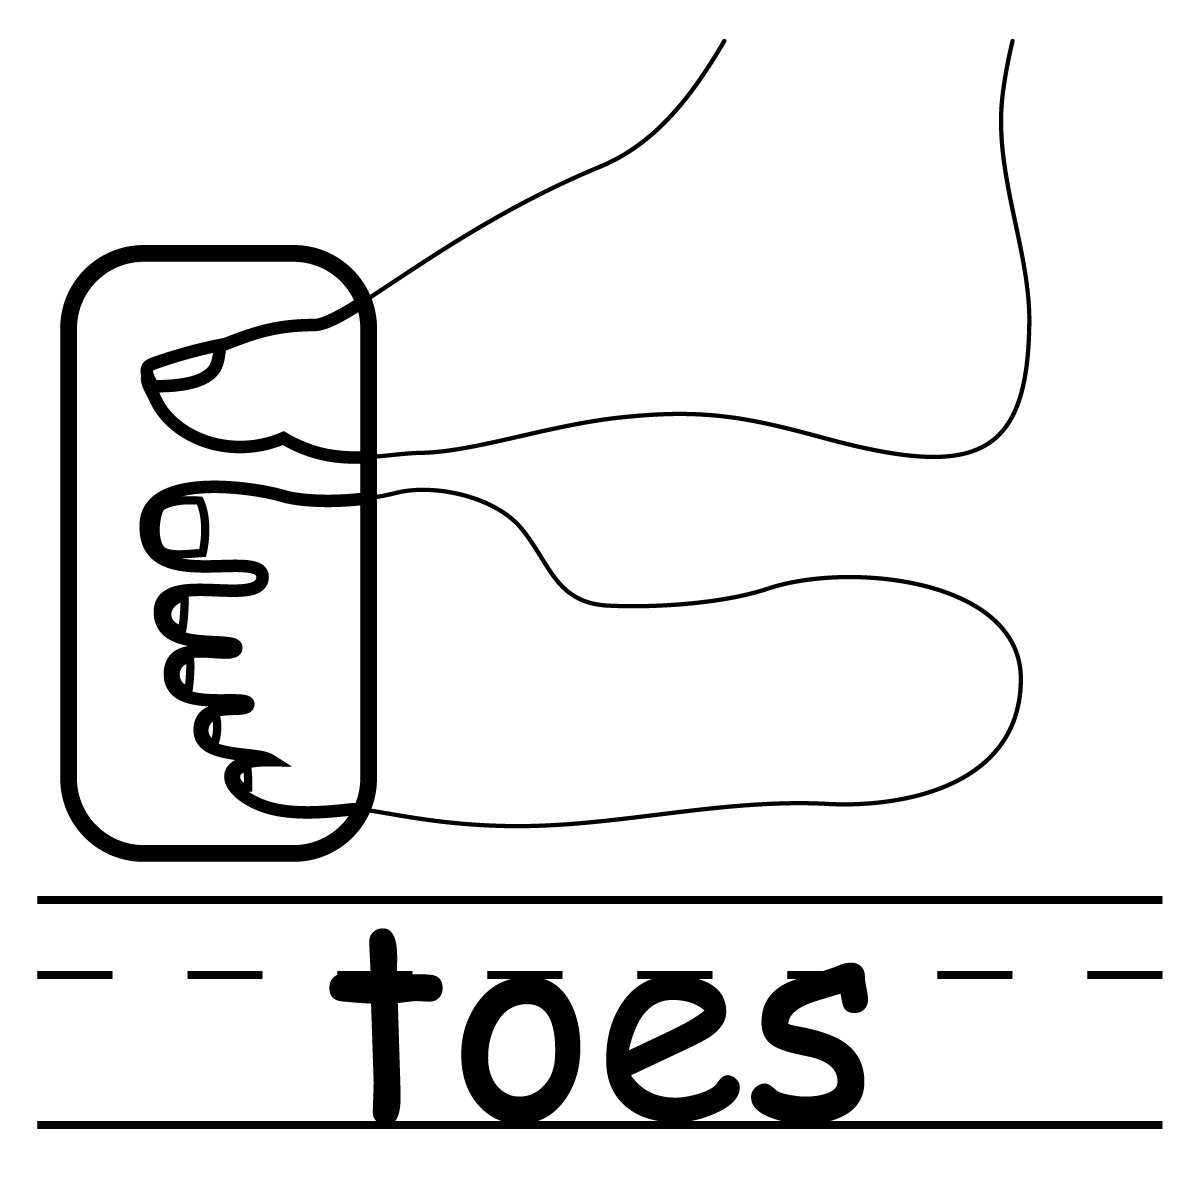 toes clipart black and white clipart best